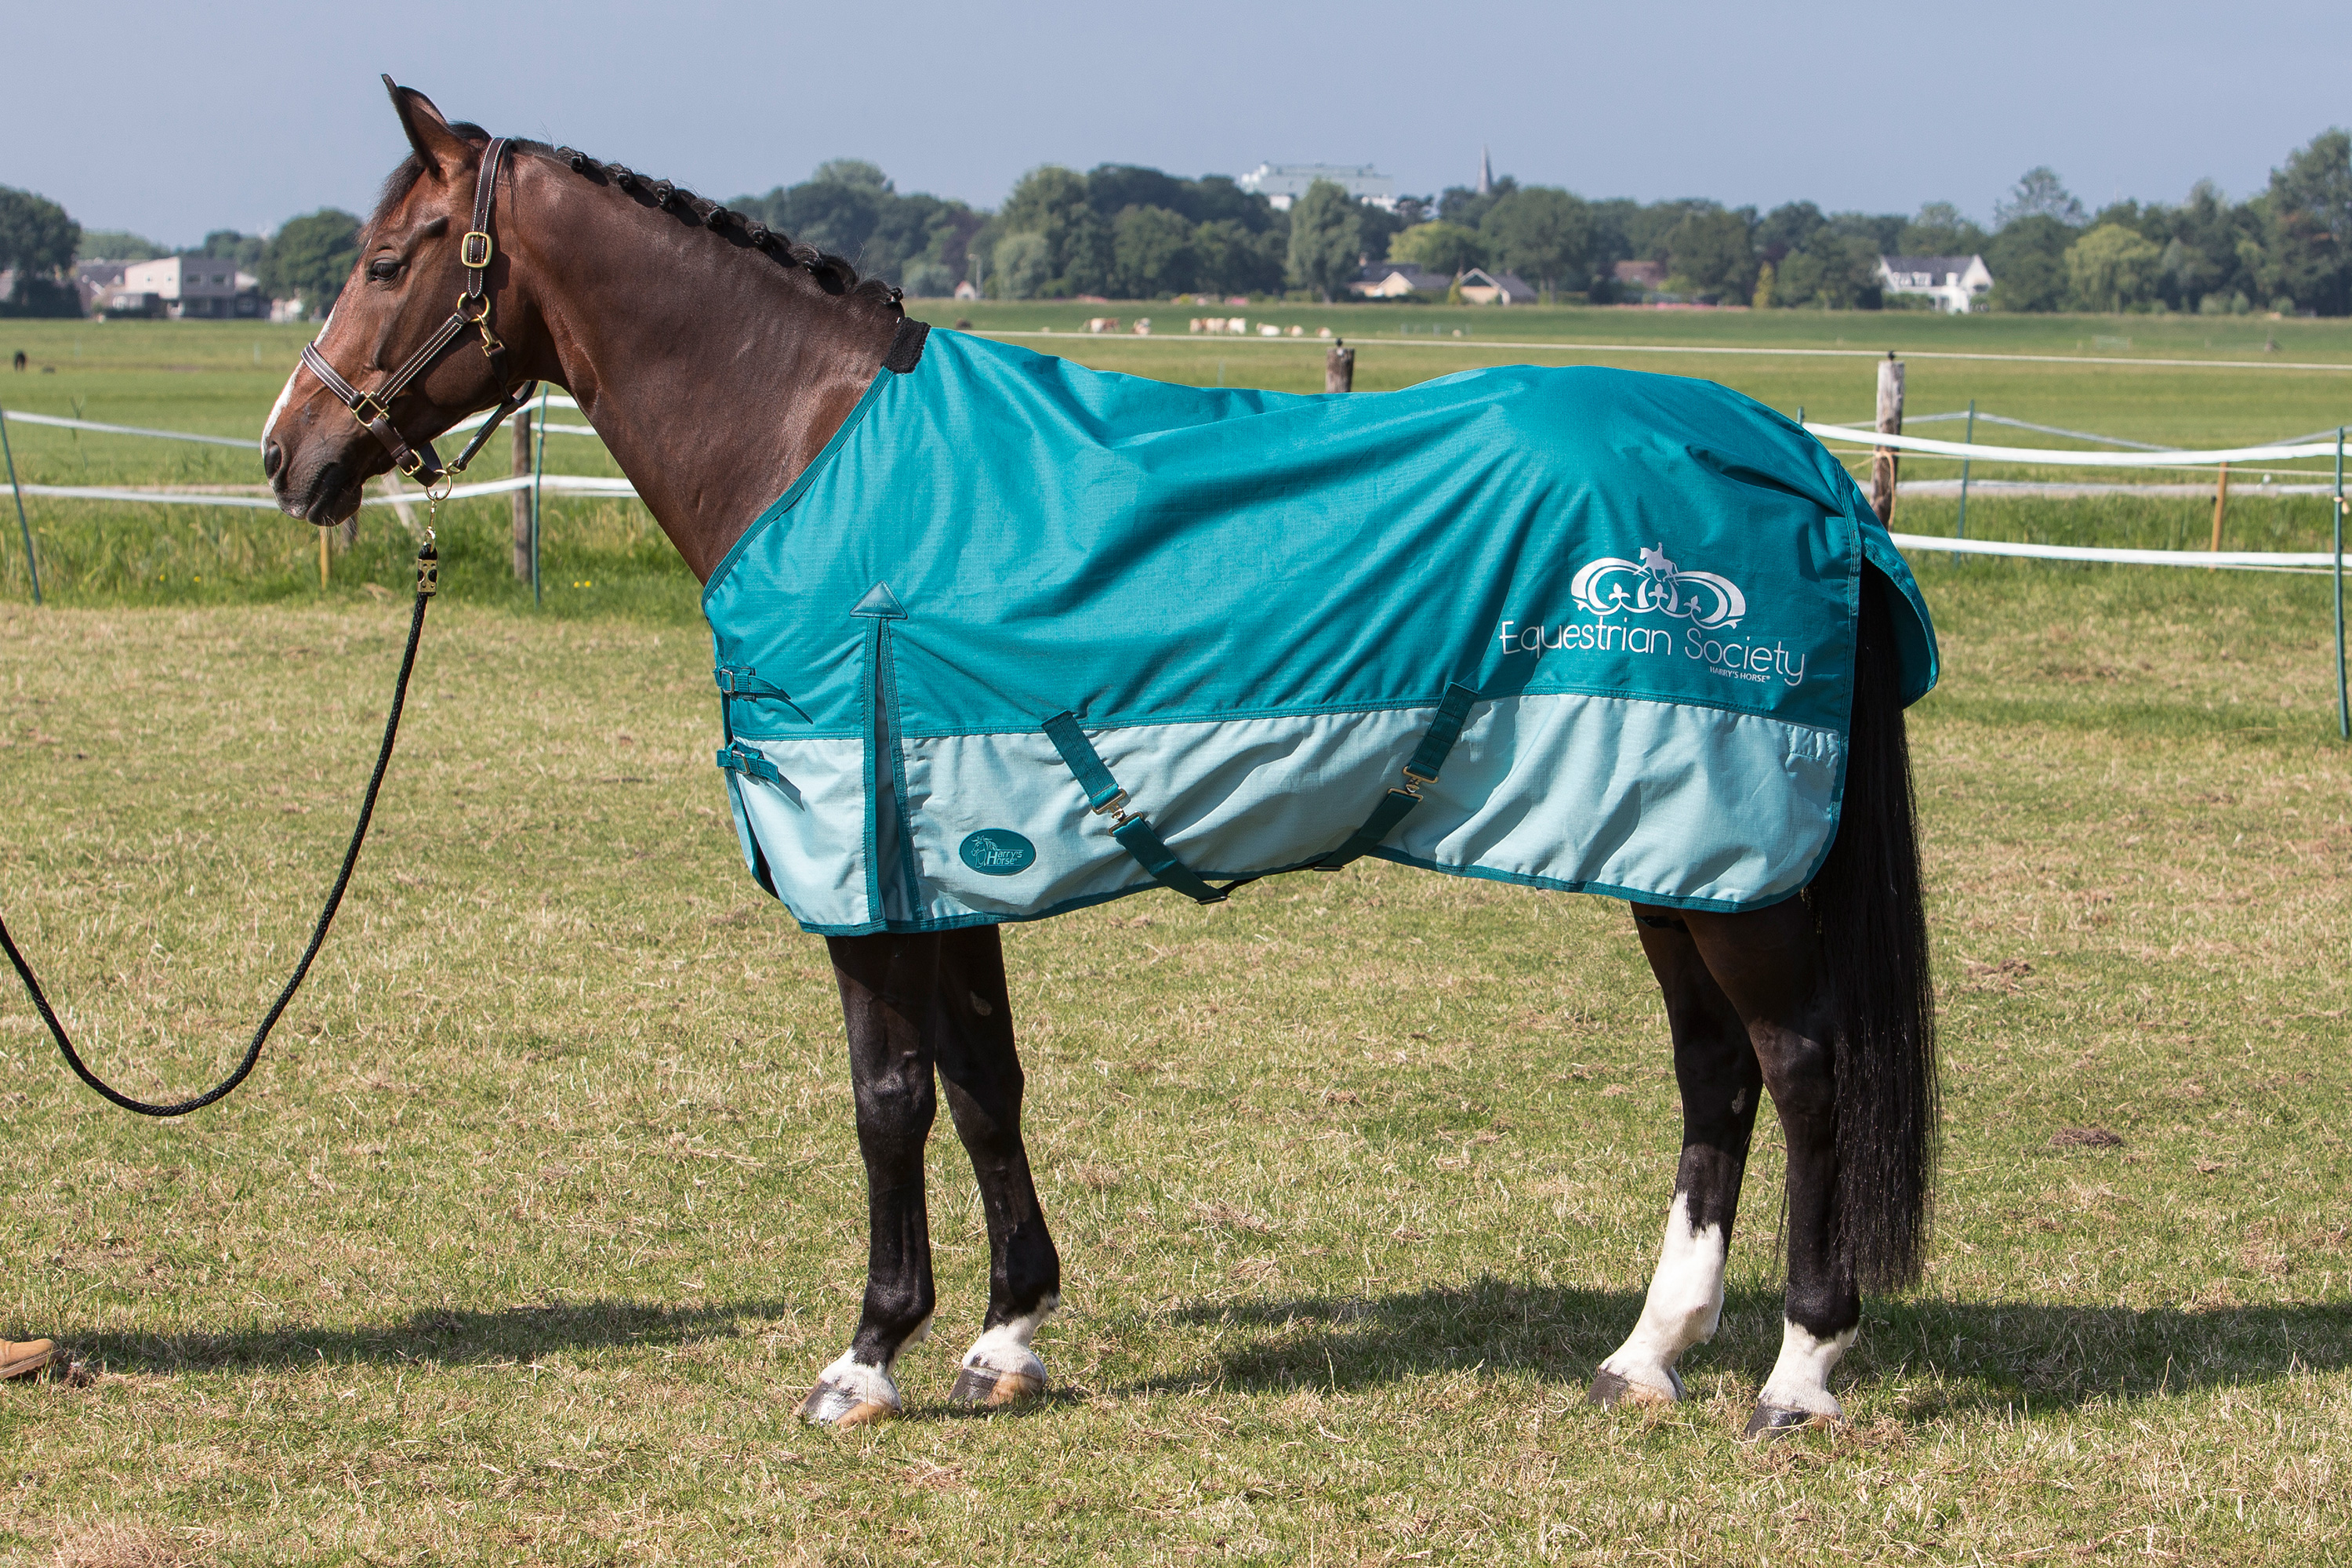 Harry's Horse Rug Thor 0 gr., TC lining Deep lake with Print